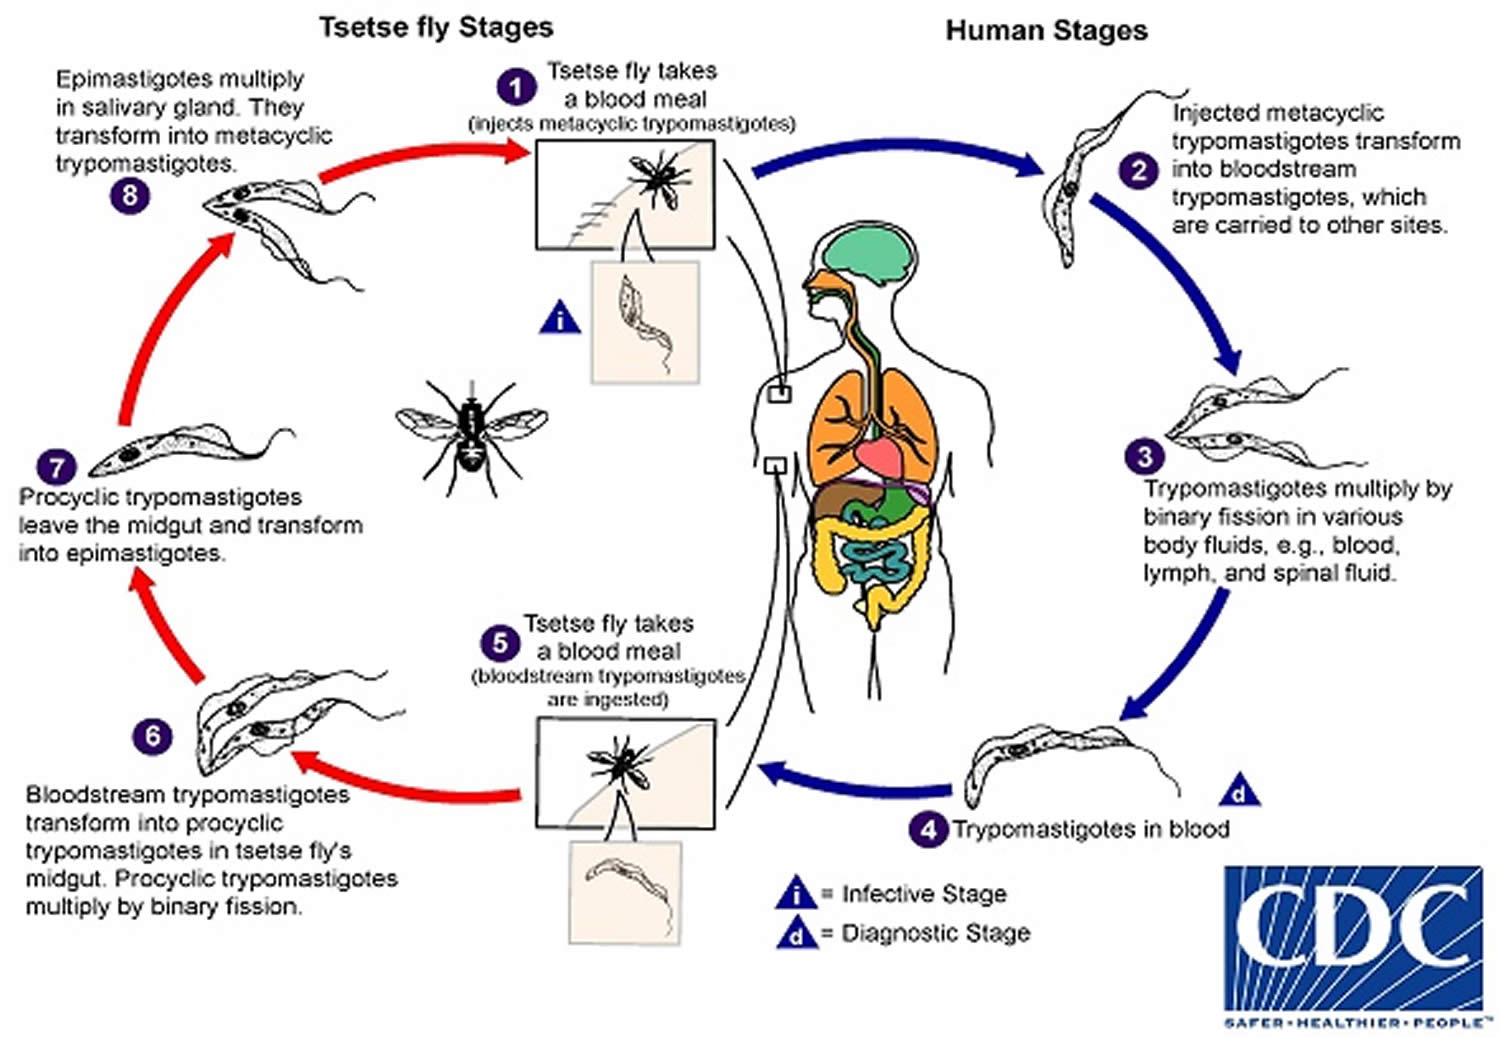 African sleeping sickness life cycle_Trypanosoma life-cycle